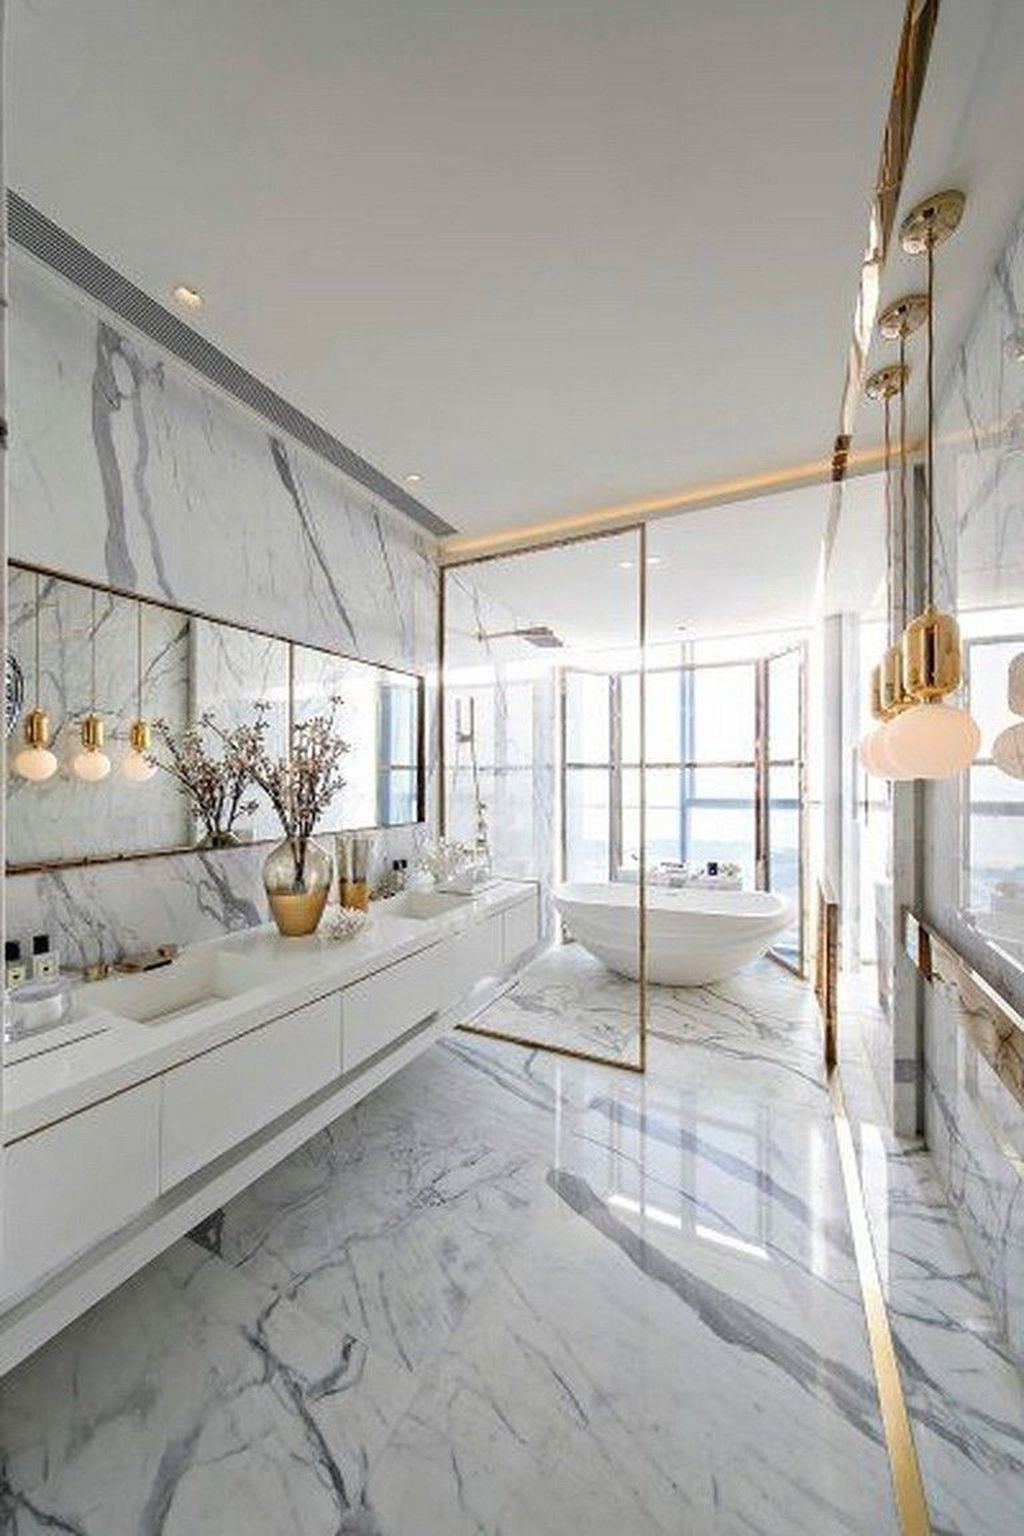 Luxury Bathroom Design And Decor Ideas 29